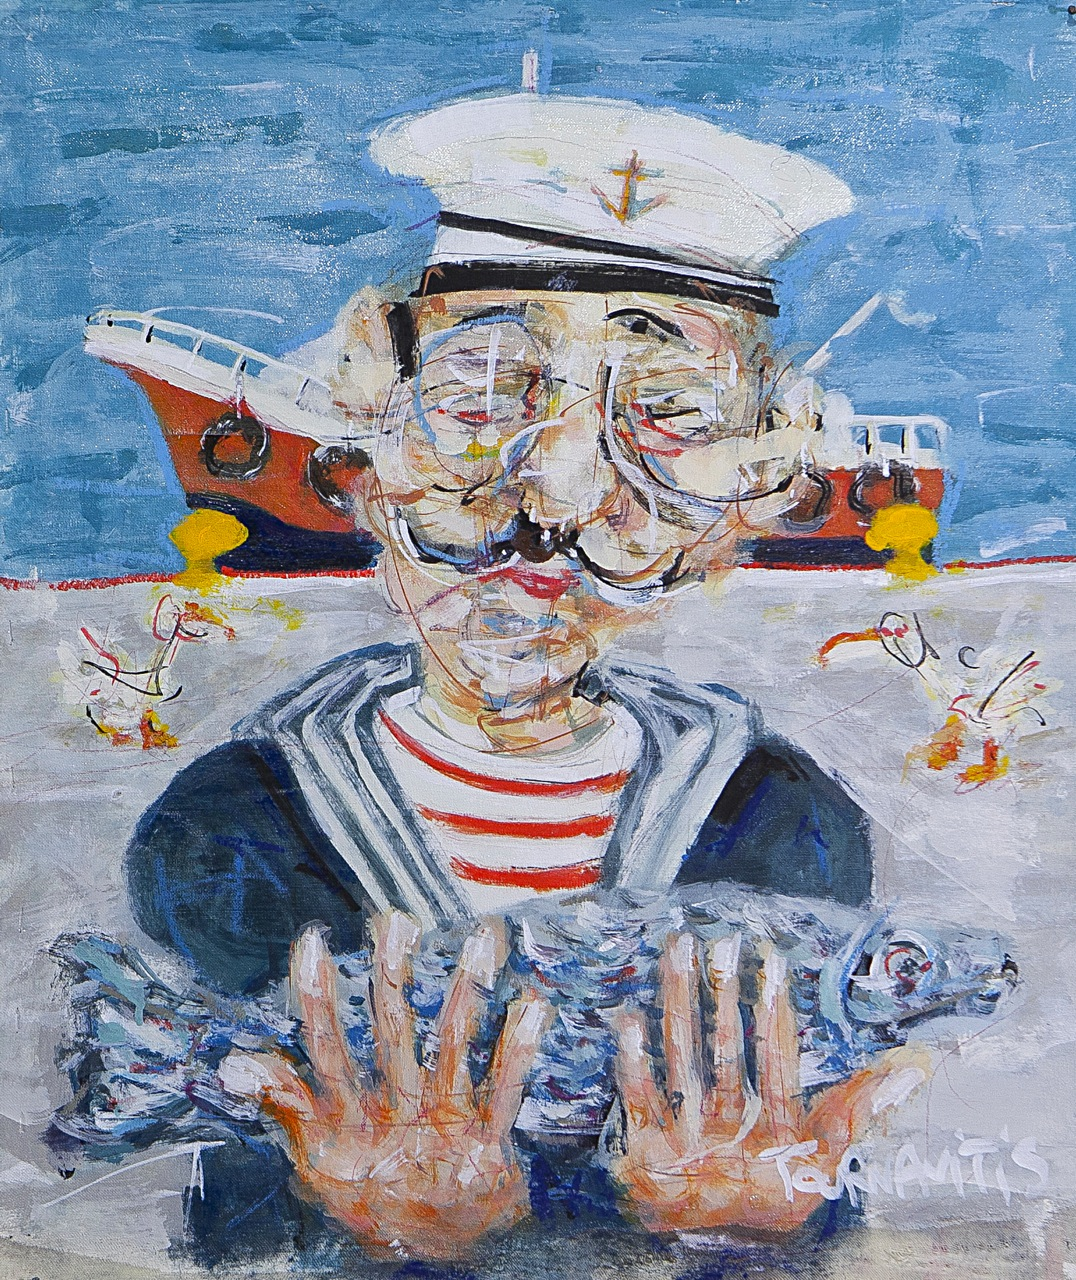 5.Sailor, 54x46cm, oil on canvas